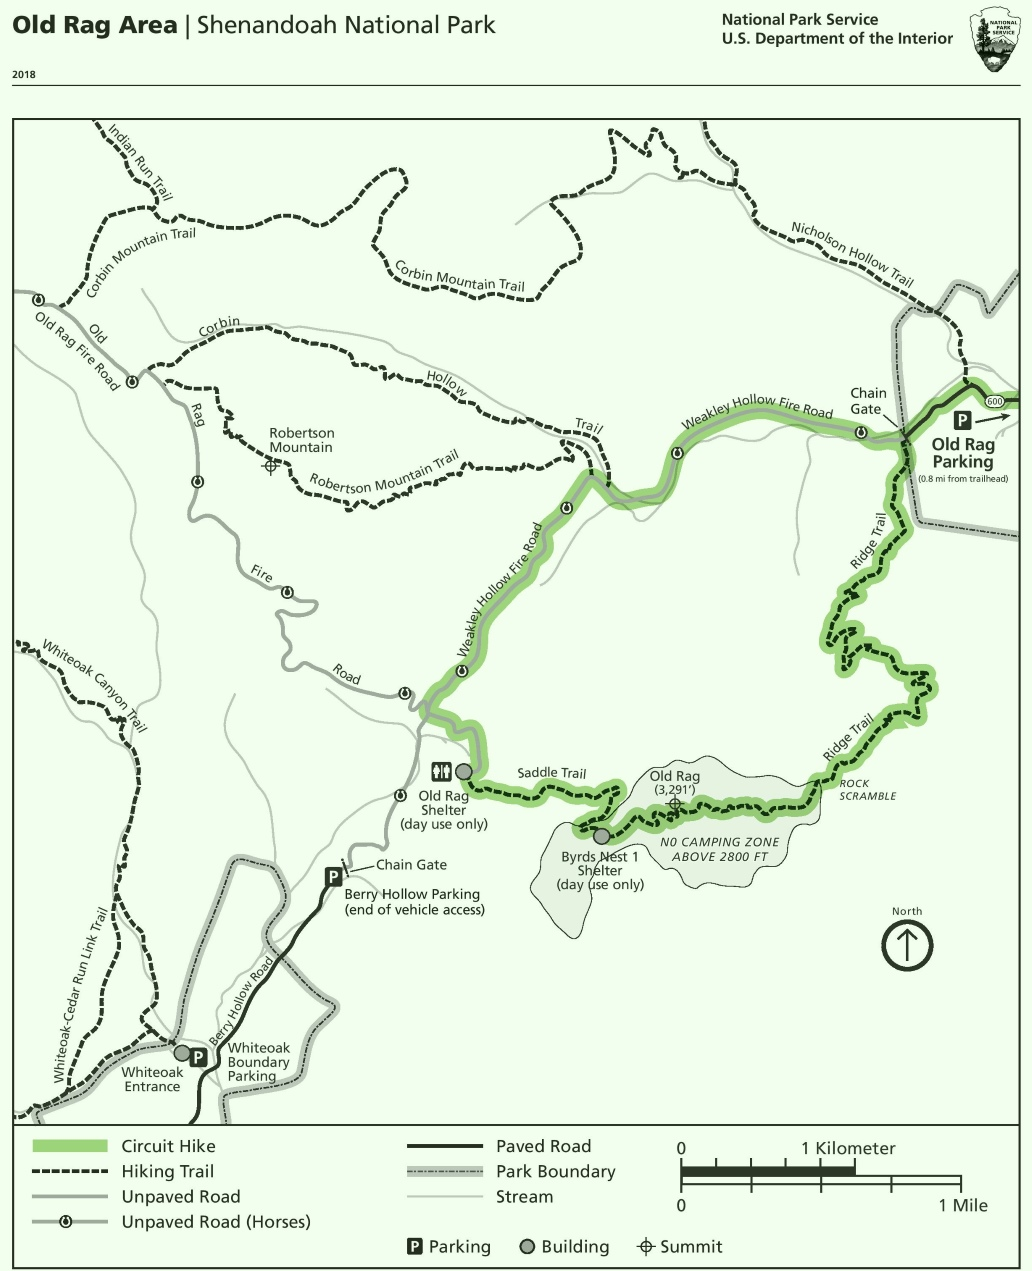 Shenandoah Old Rag Area Trail Map